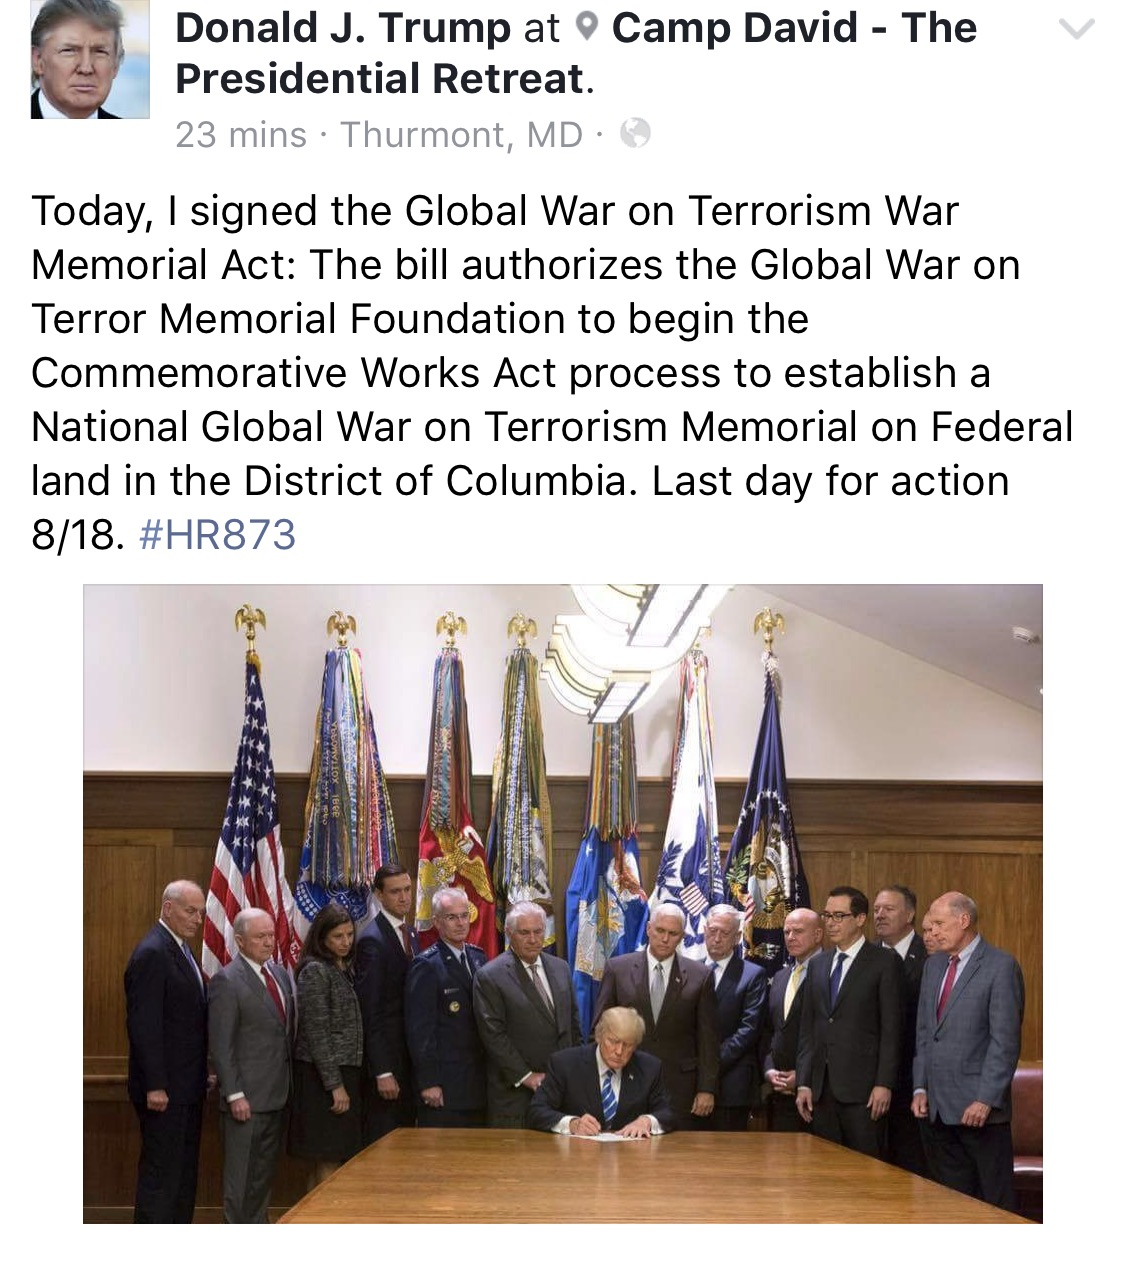 terrorism a global war A national global war on terrorism memorial today marks the 16th anniversary of the september 11 terrorist attacks on our country pentagon workers unfurl a large american flag over the west side of the pentagon at sunrise, sept 11, 2017, on the 16th anniversary of the 9/11 terrorist attacks.